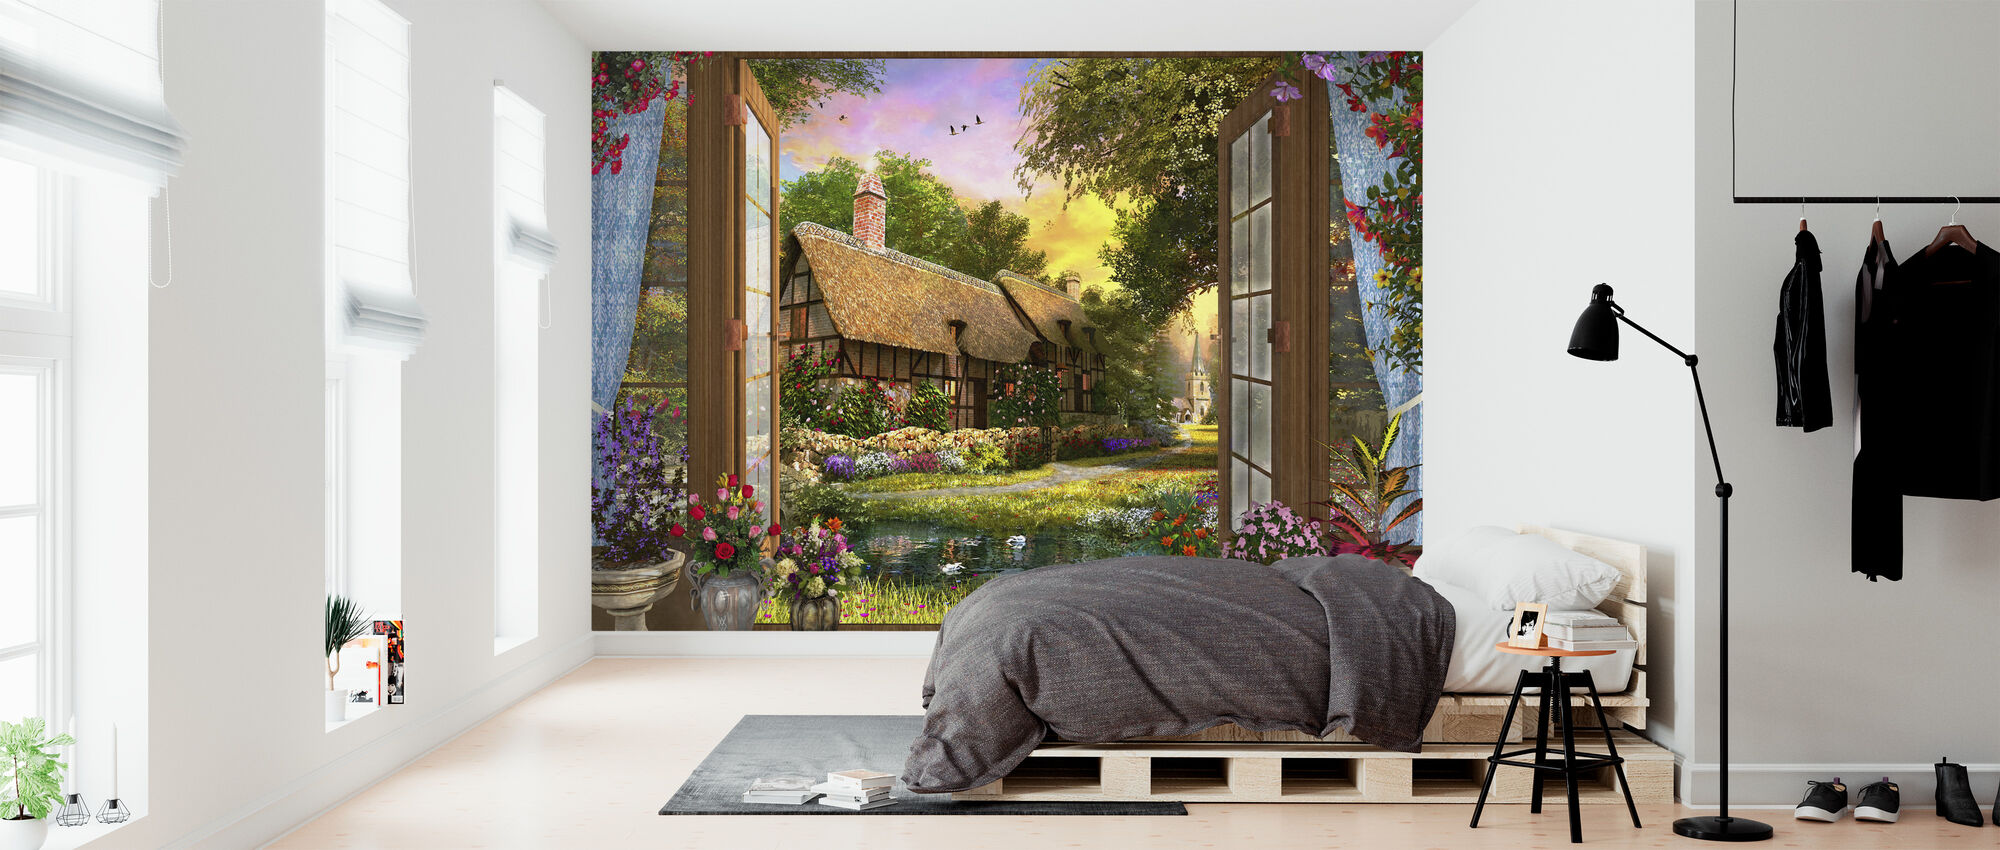 Cottage View Sunset - Wallpaper - Bedroom